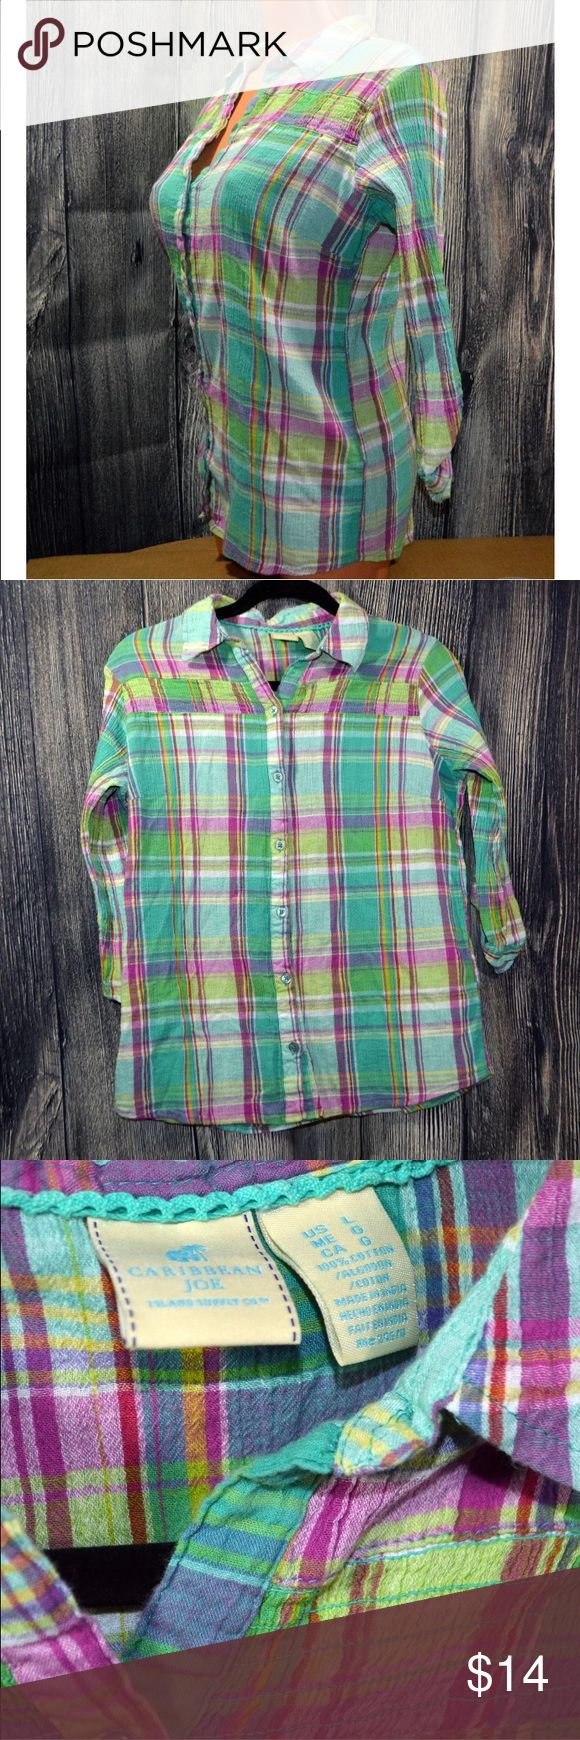 CARIBBEAN JOE Women's Large Button Down Plaid CARIBBEAN JOE Colorful  WOMEN'S  L Large  BUTTON DOWN  PLAIDS  TOP L   Country Casual Caribbean Joe Tops Button Down Shirts